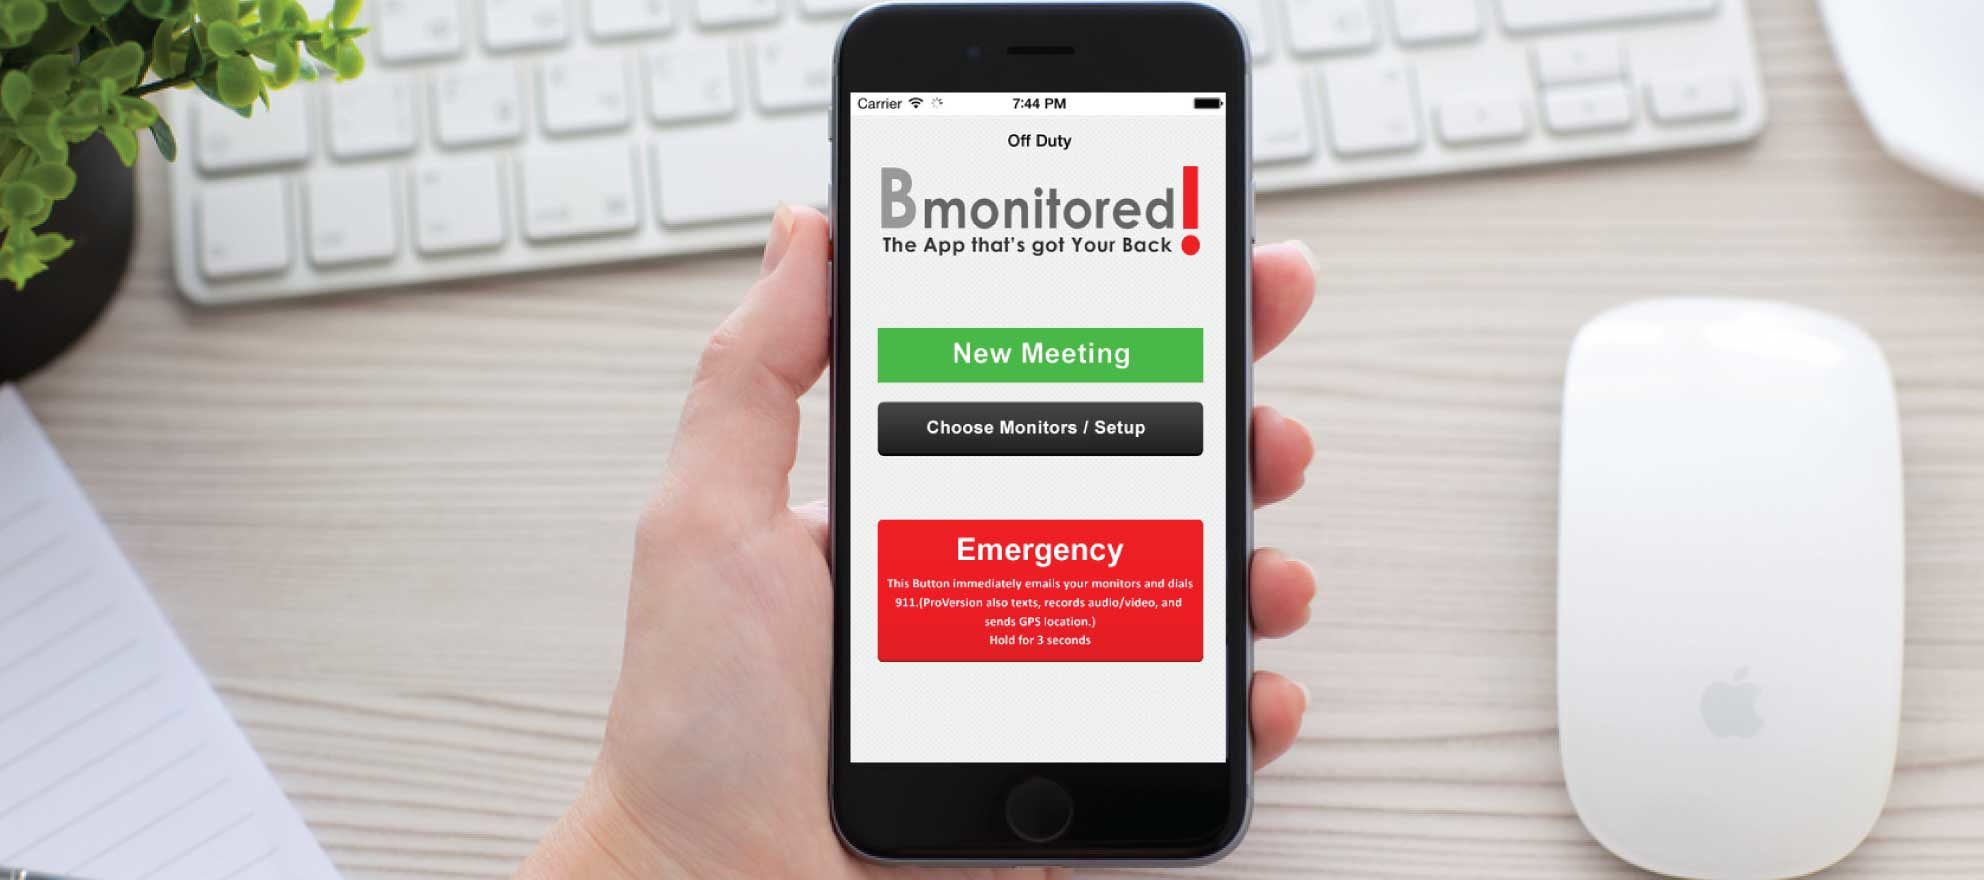 Mobile app offers client meeting safety for Realtors